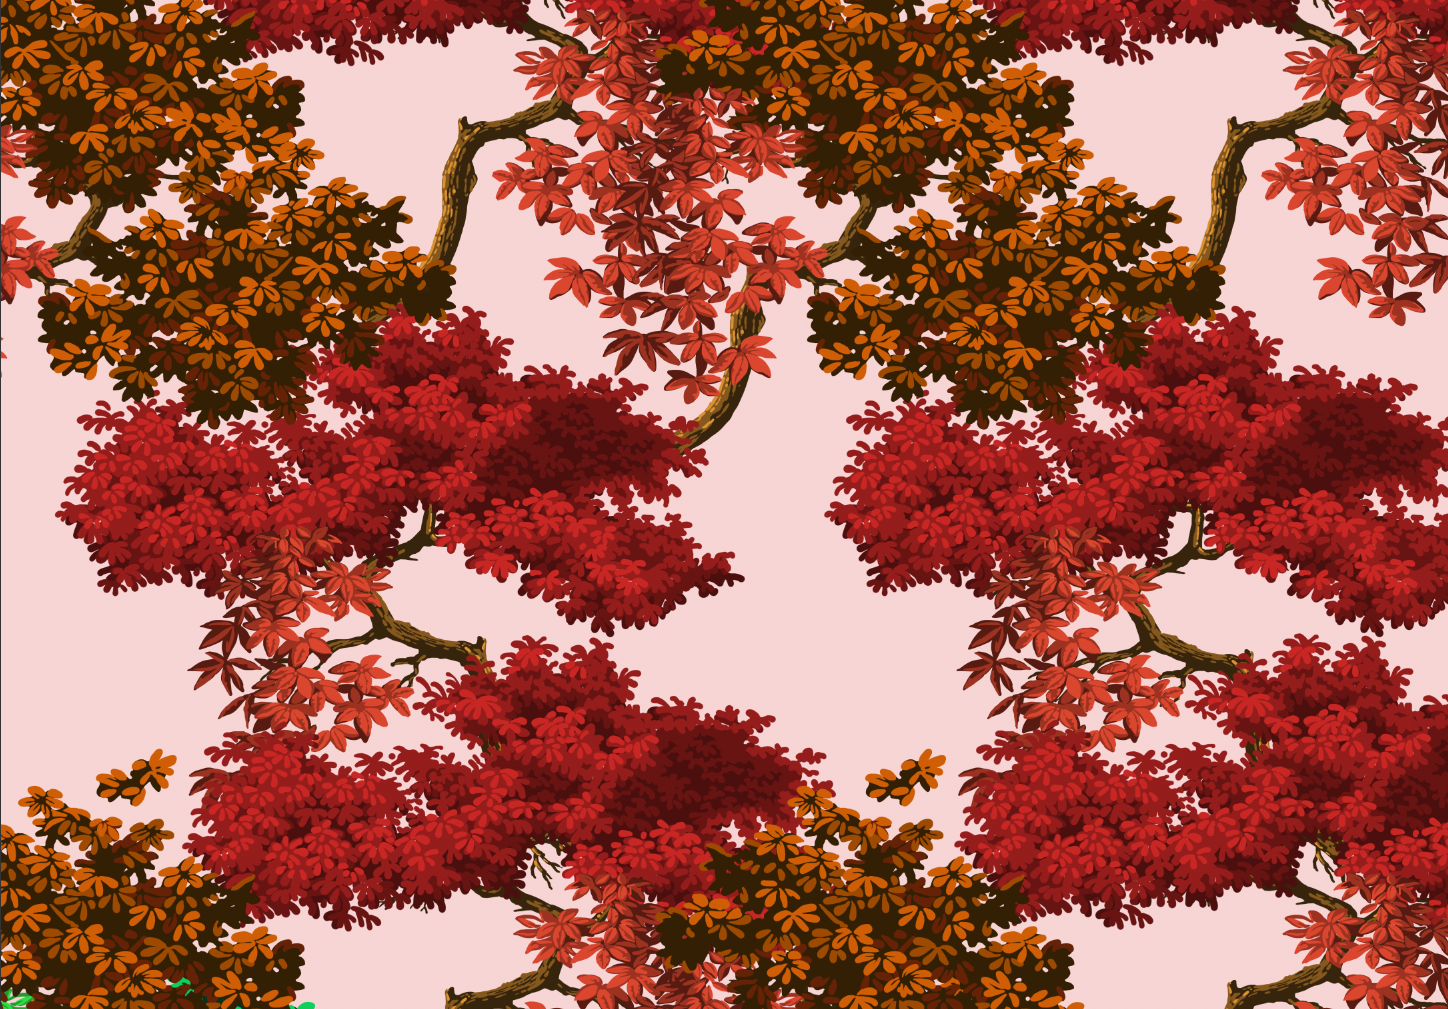 Surface Design from the Studio Seasonal Collection